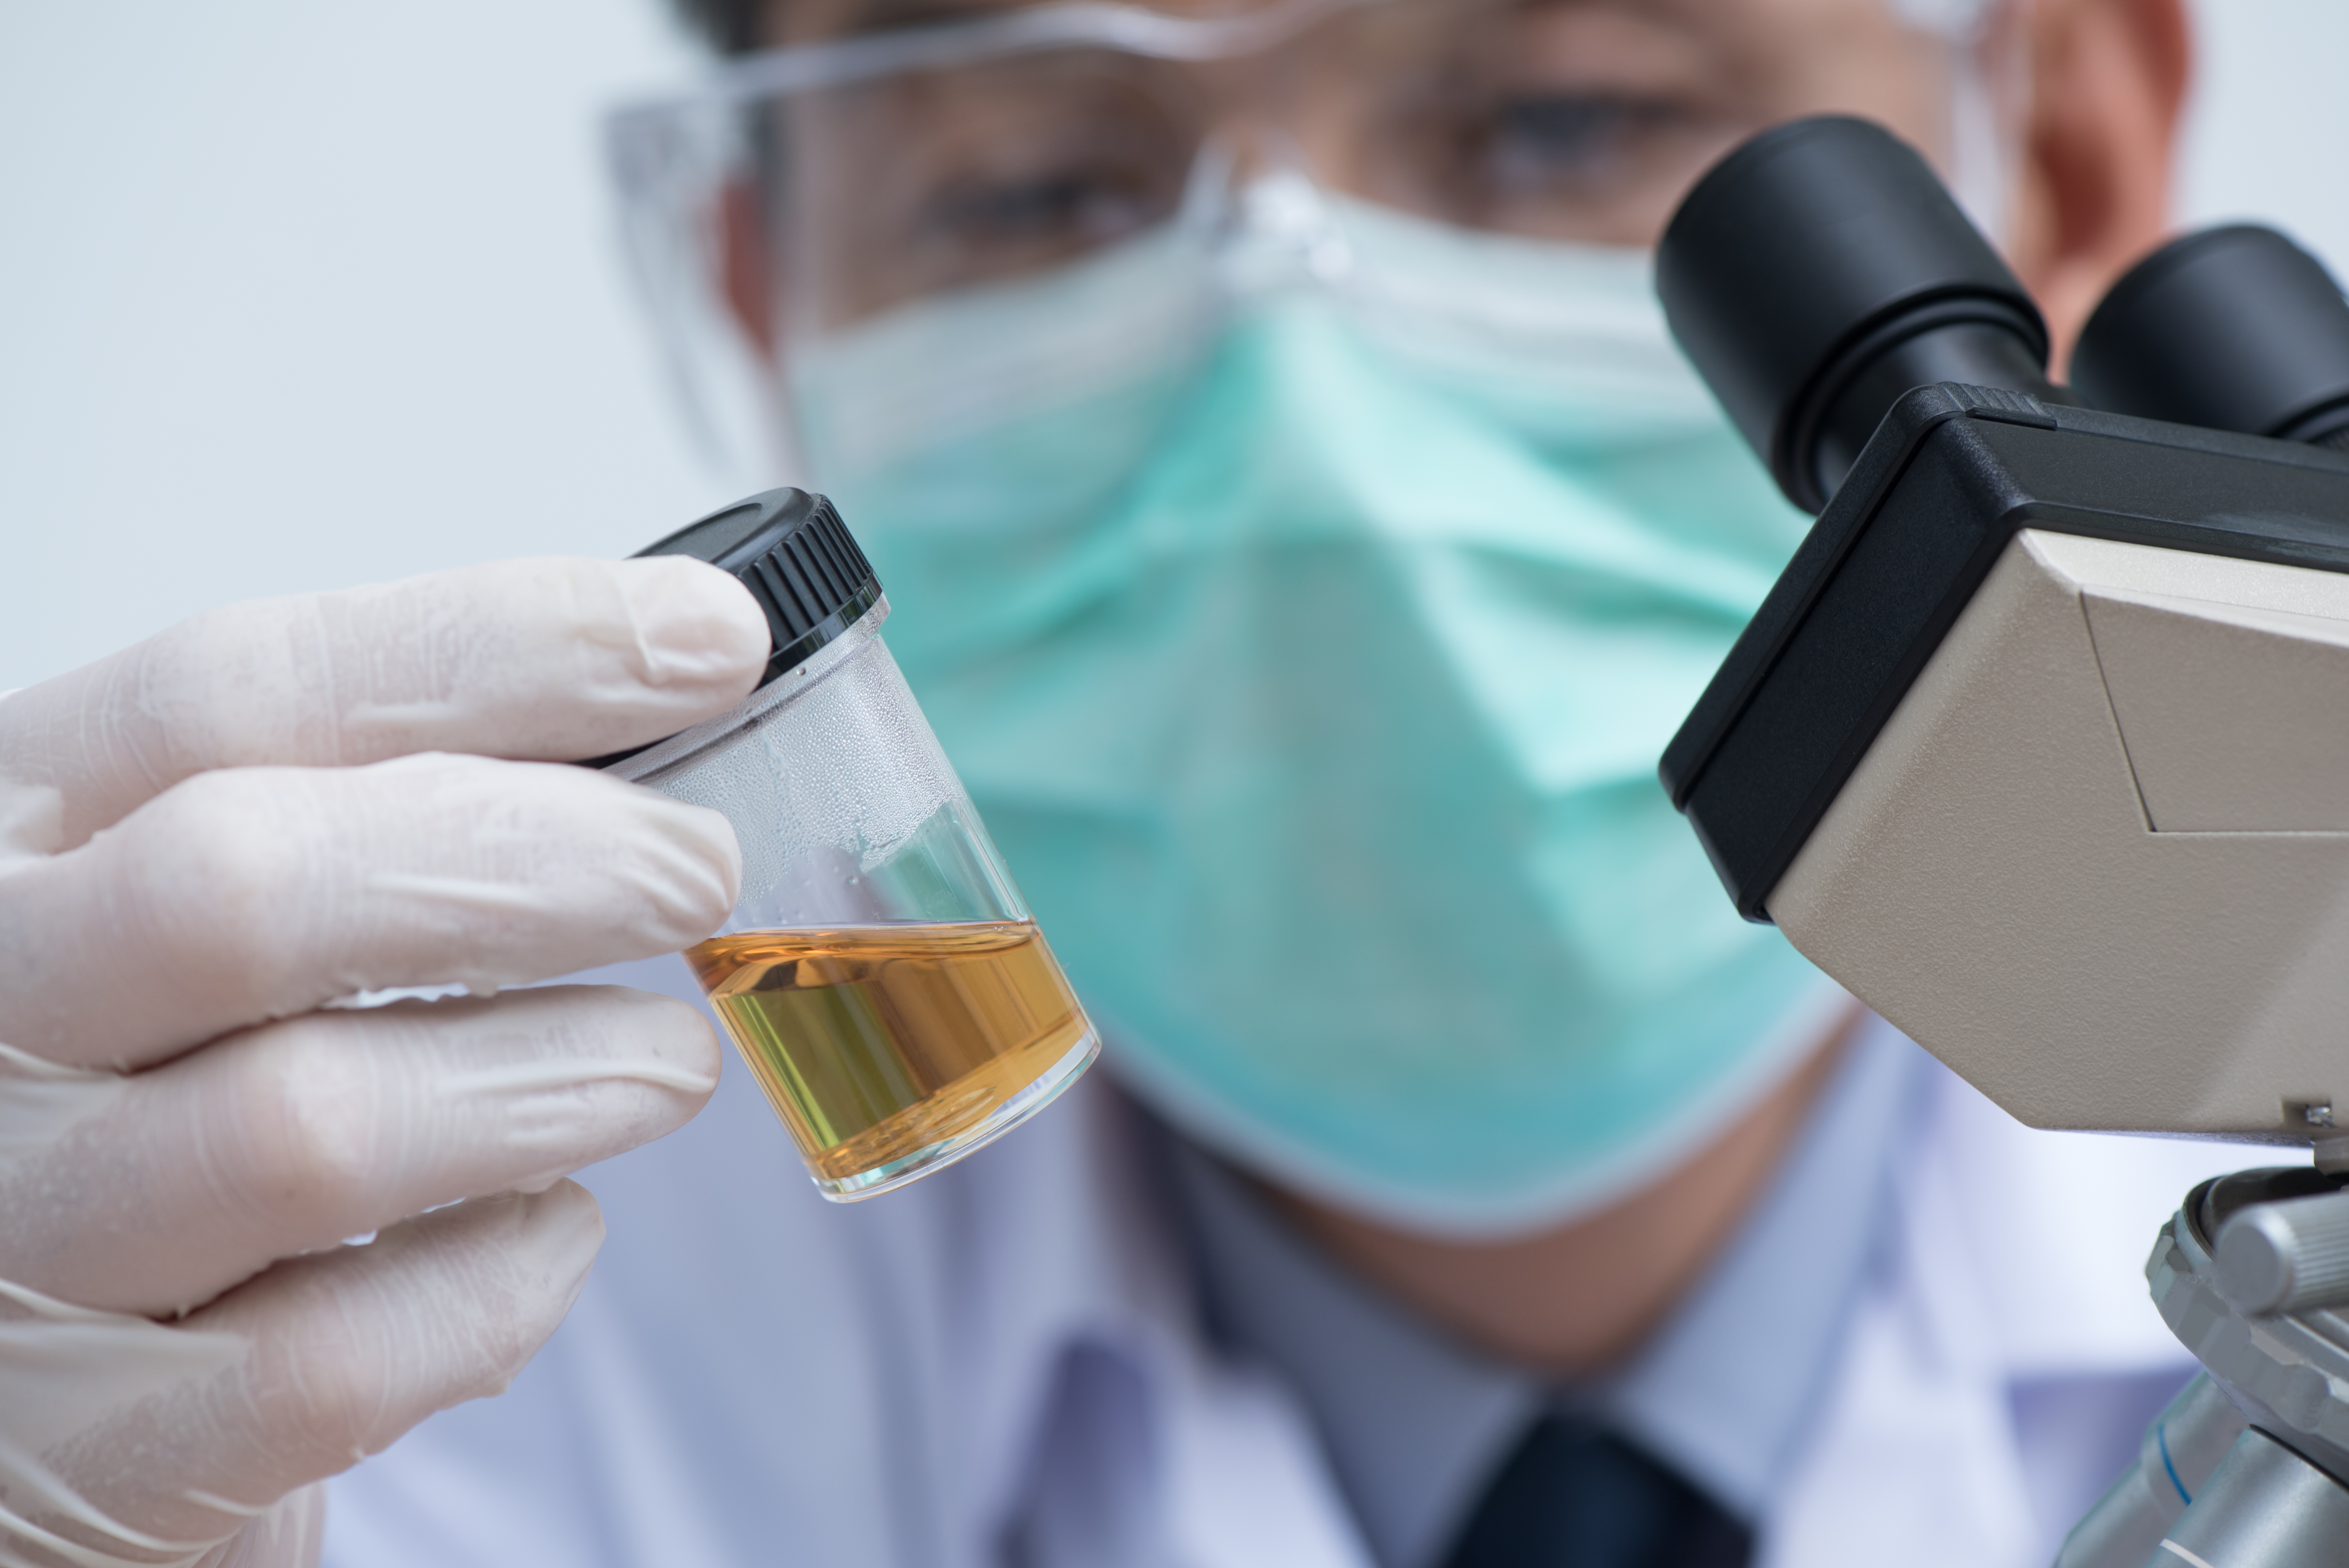 Scientist looking closely at a urine sample